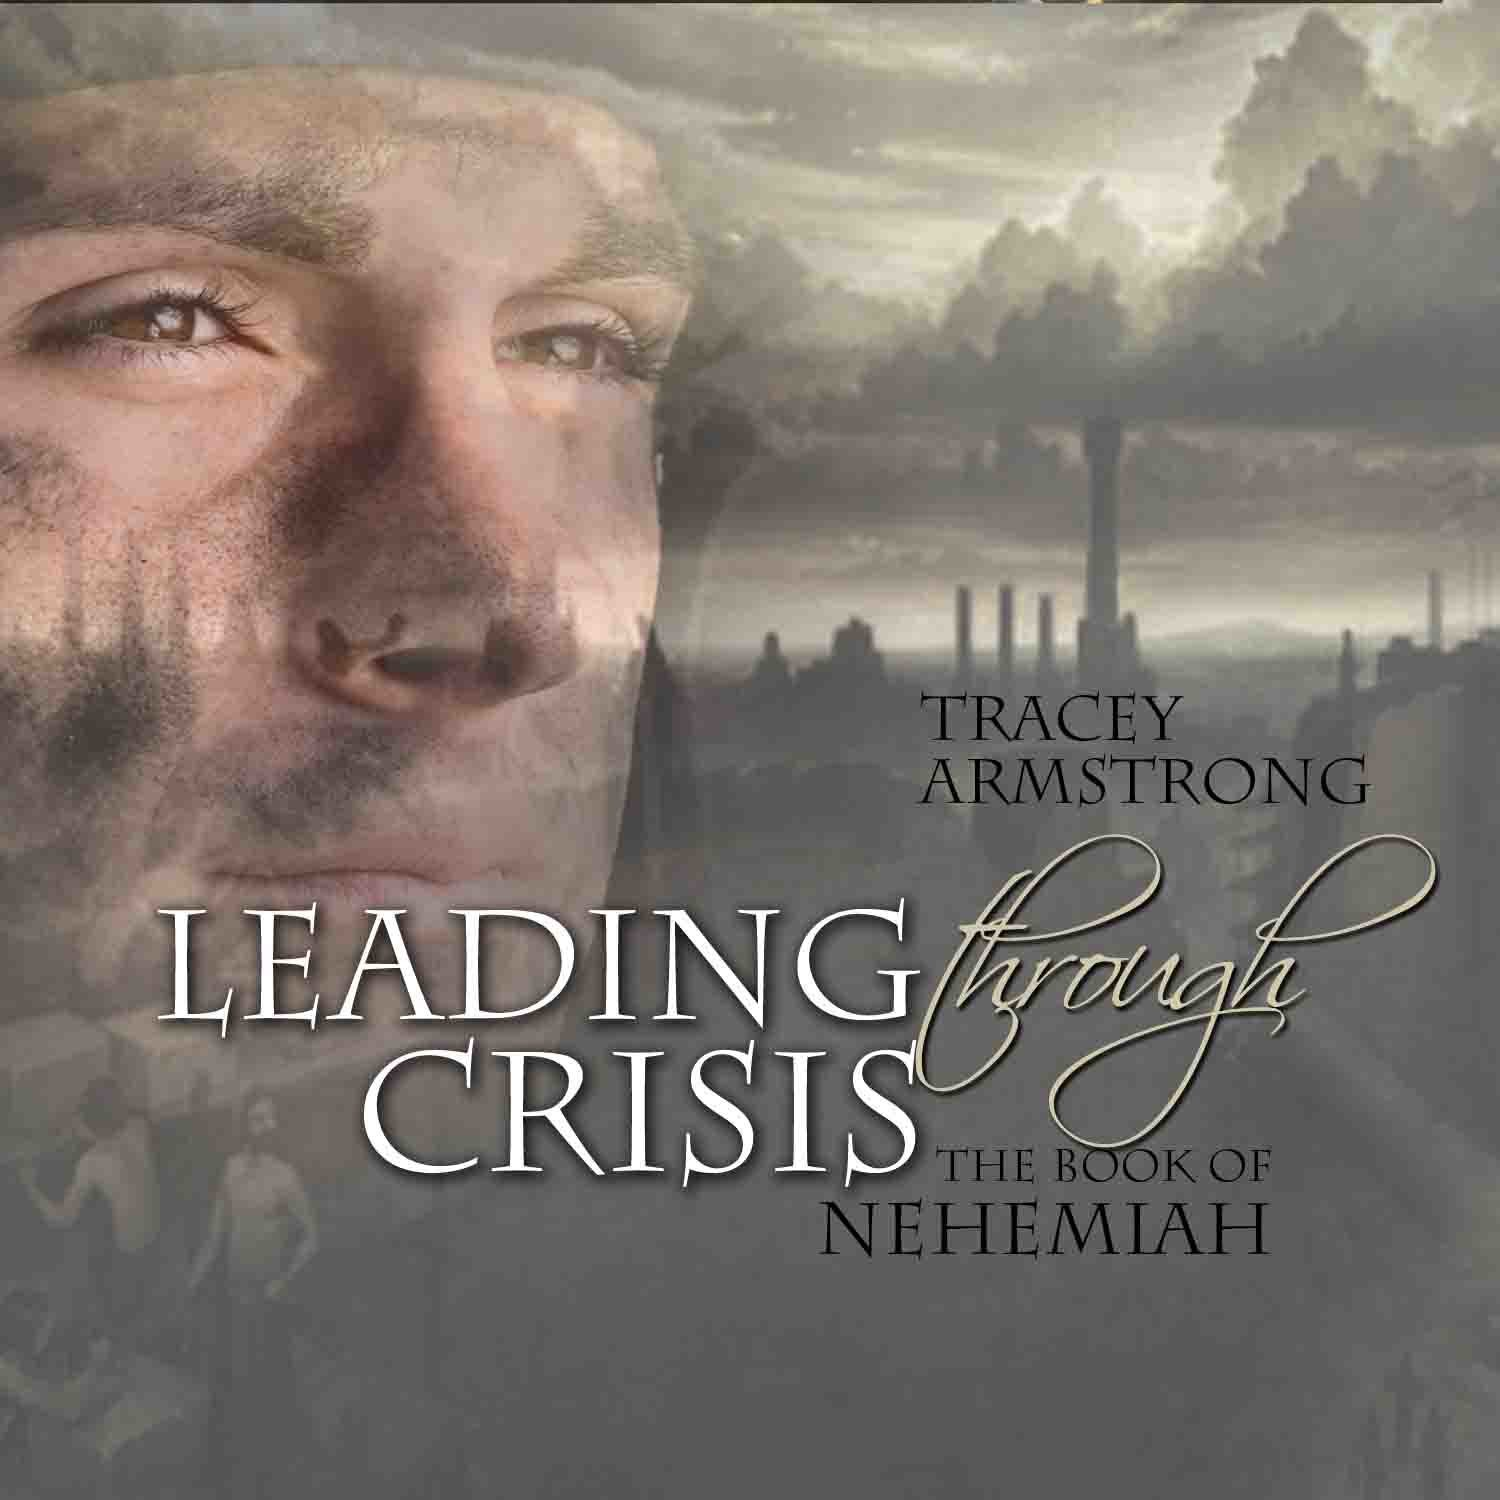 Leading Through Crisis (from the book of Nehemiah)